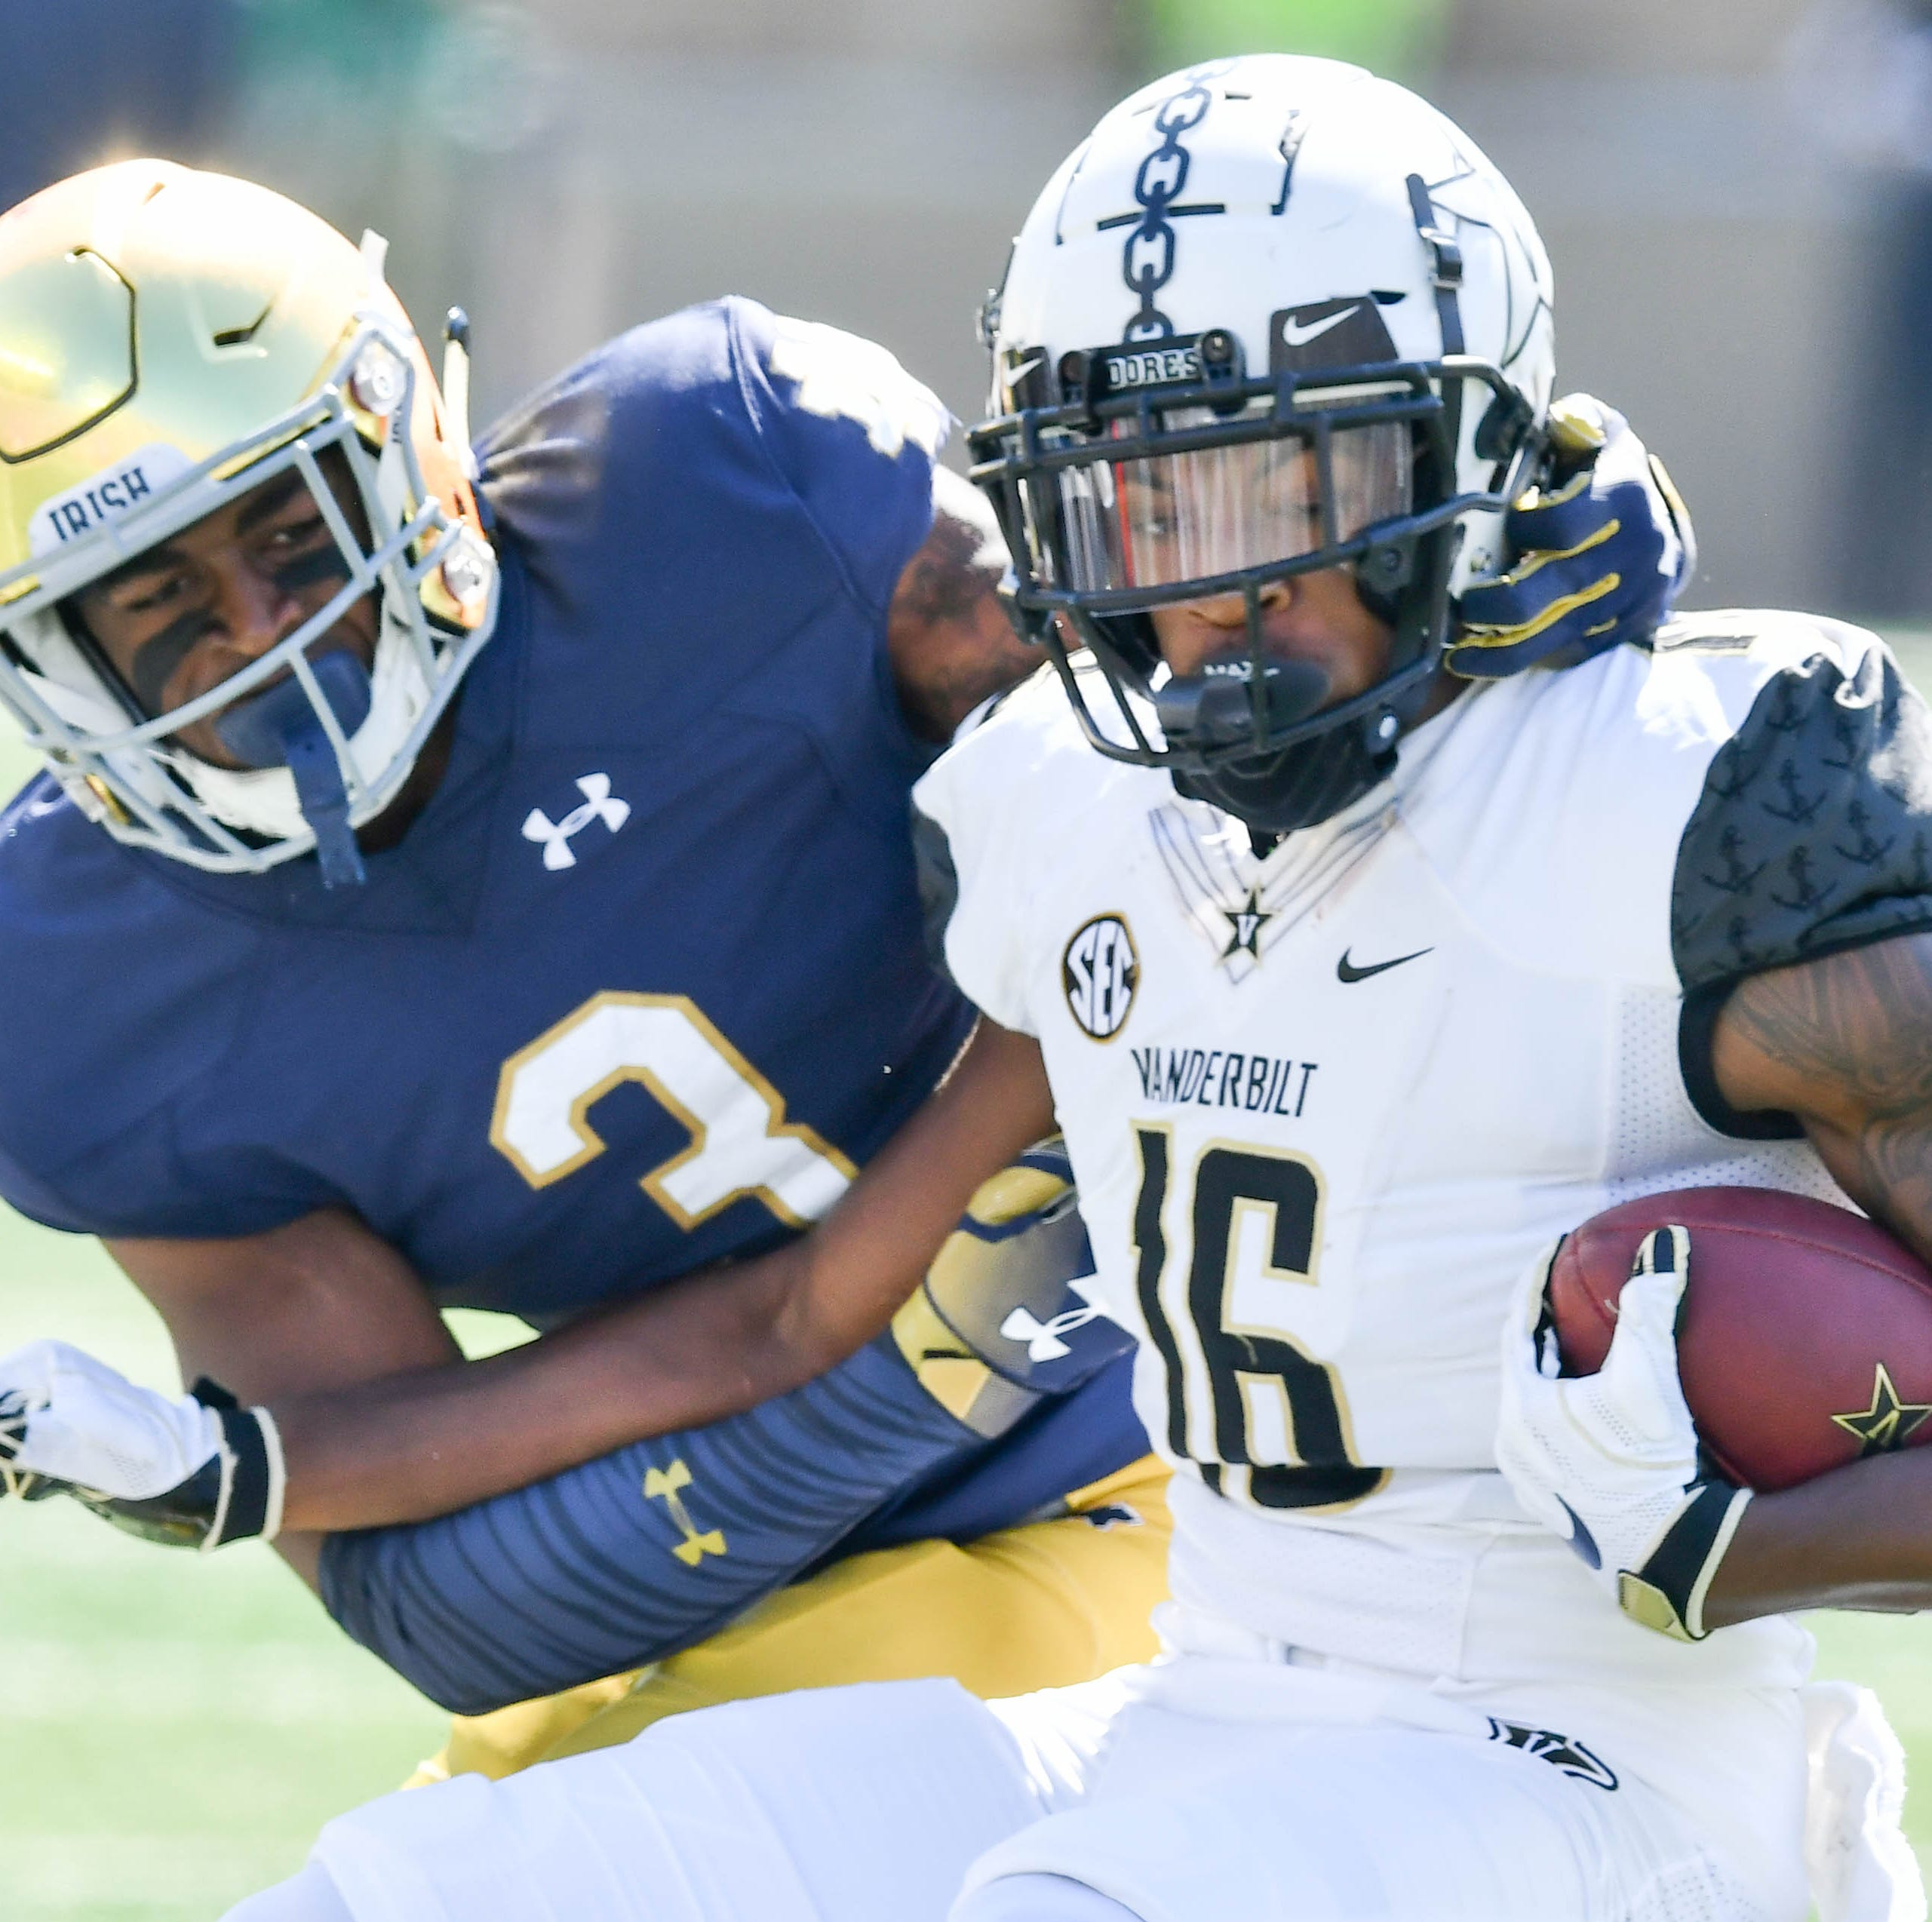 Sep 15, 2018; South Bend, IN, USA; Vanderbilt Commodores wide receiver Kalija Lipscomb (16) is tackled by Notre Dame Fighting Irish defensive back Houstson Griffith (3) in the first quarter at Notre Dame Stadium. Mandatory Credit: Matt Cashore-USA TODAY Sports